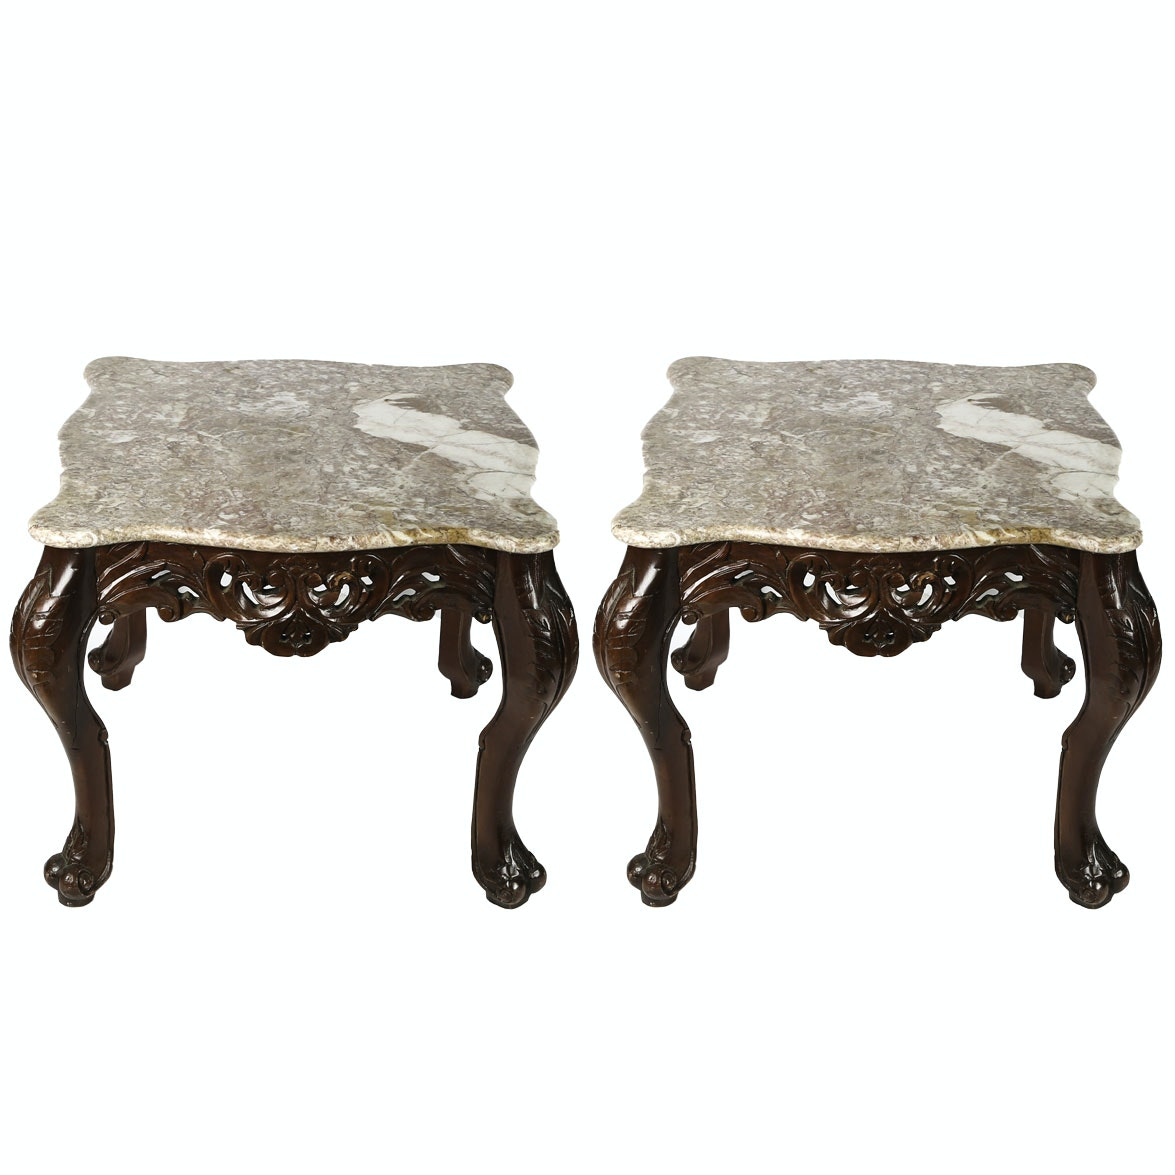 Italian Baroque Style Side Tables